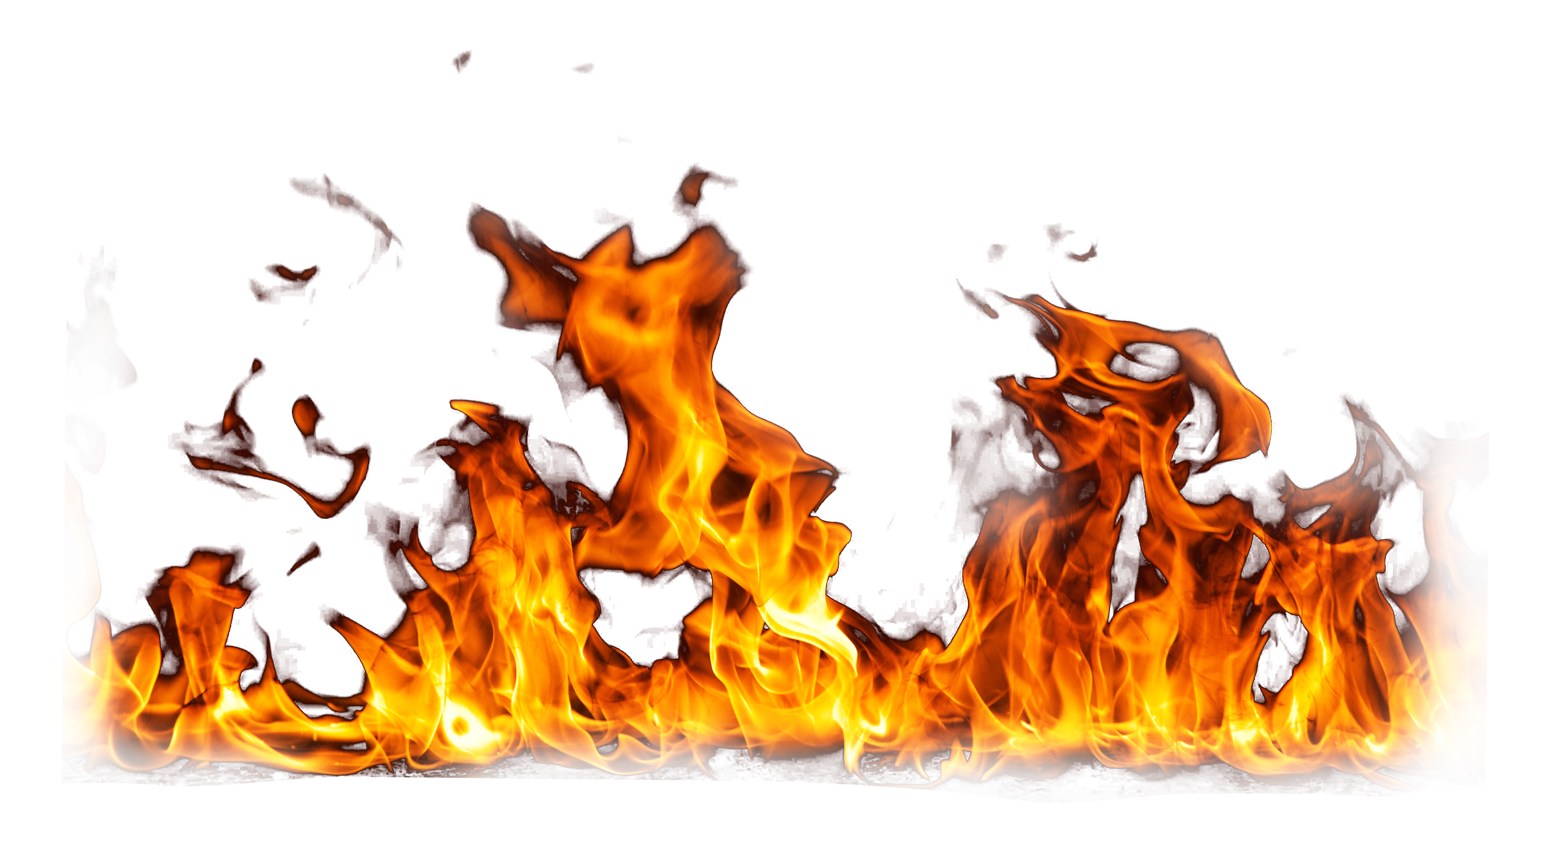 Fire Flame Burning Ground PNG Image